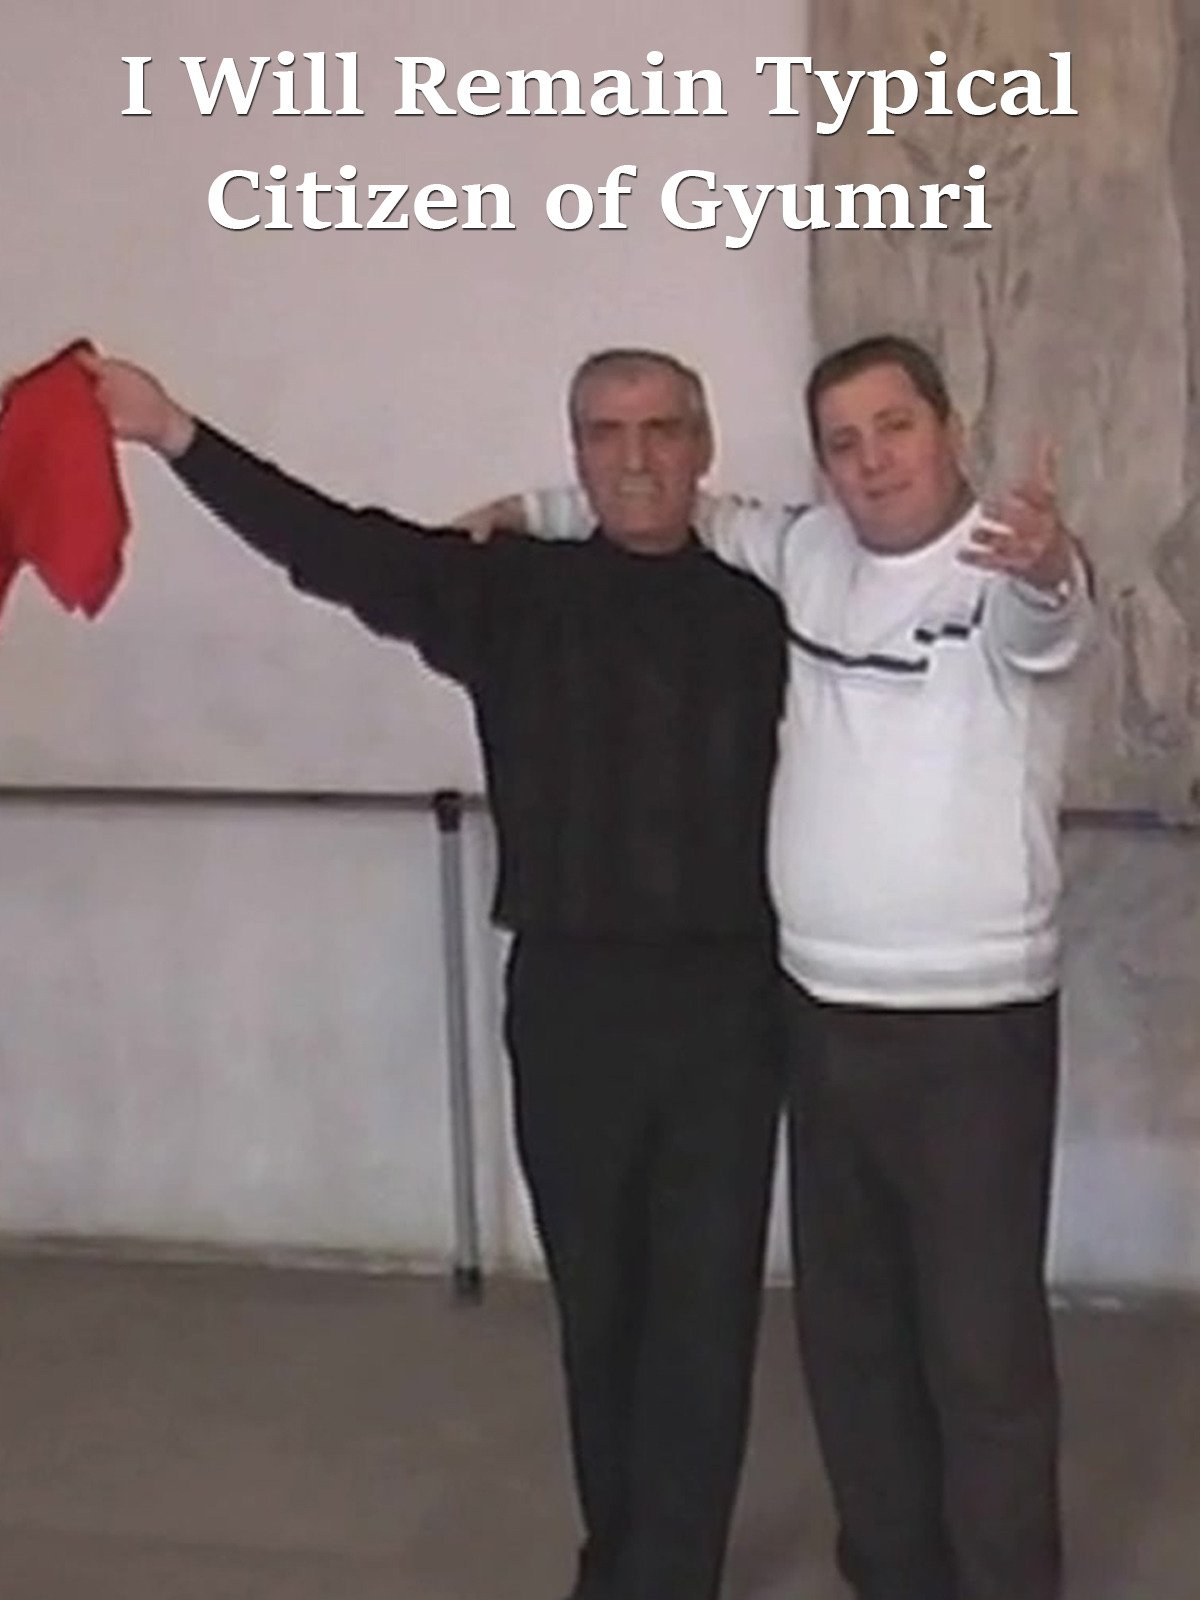 I Will Remain a Typical Citizen of Gyumri